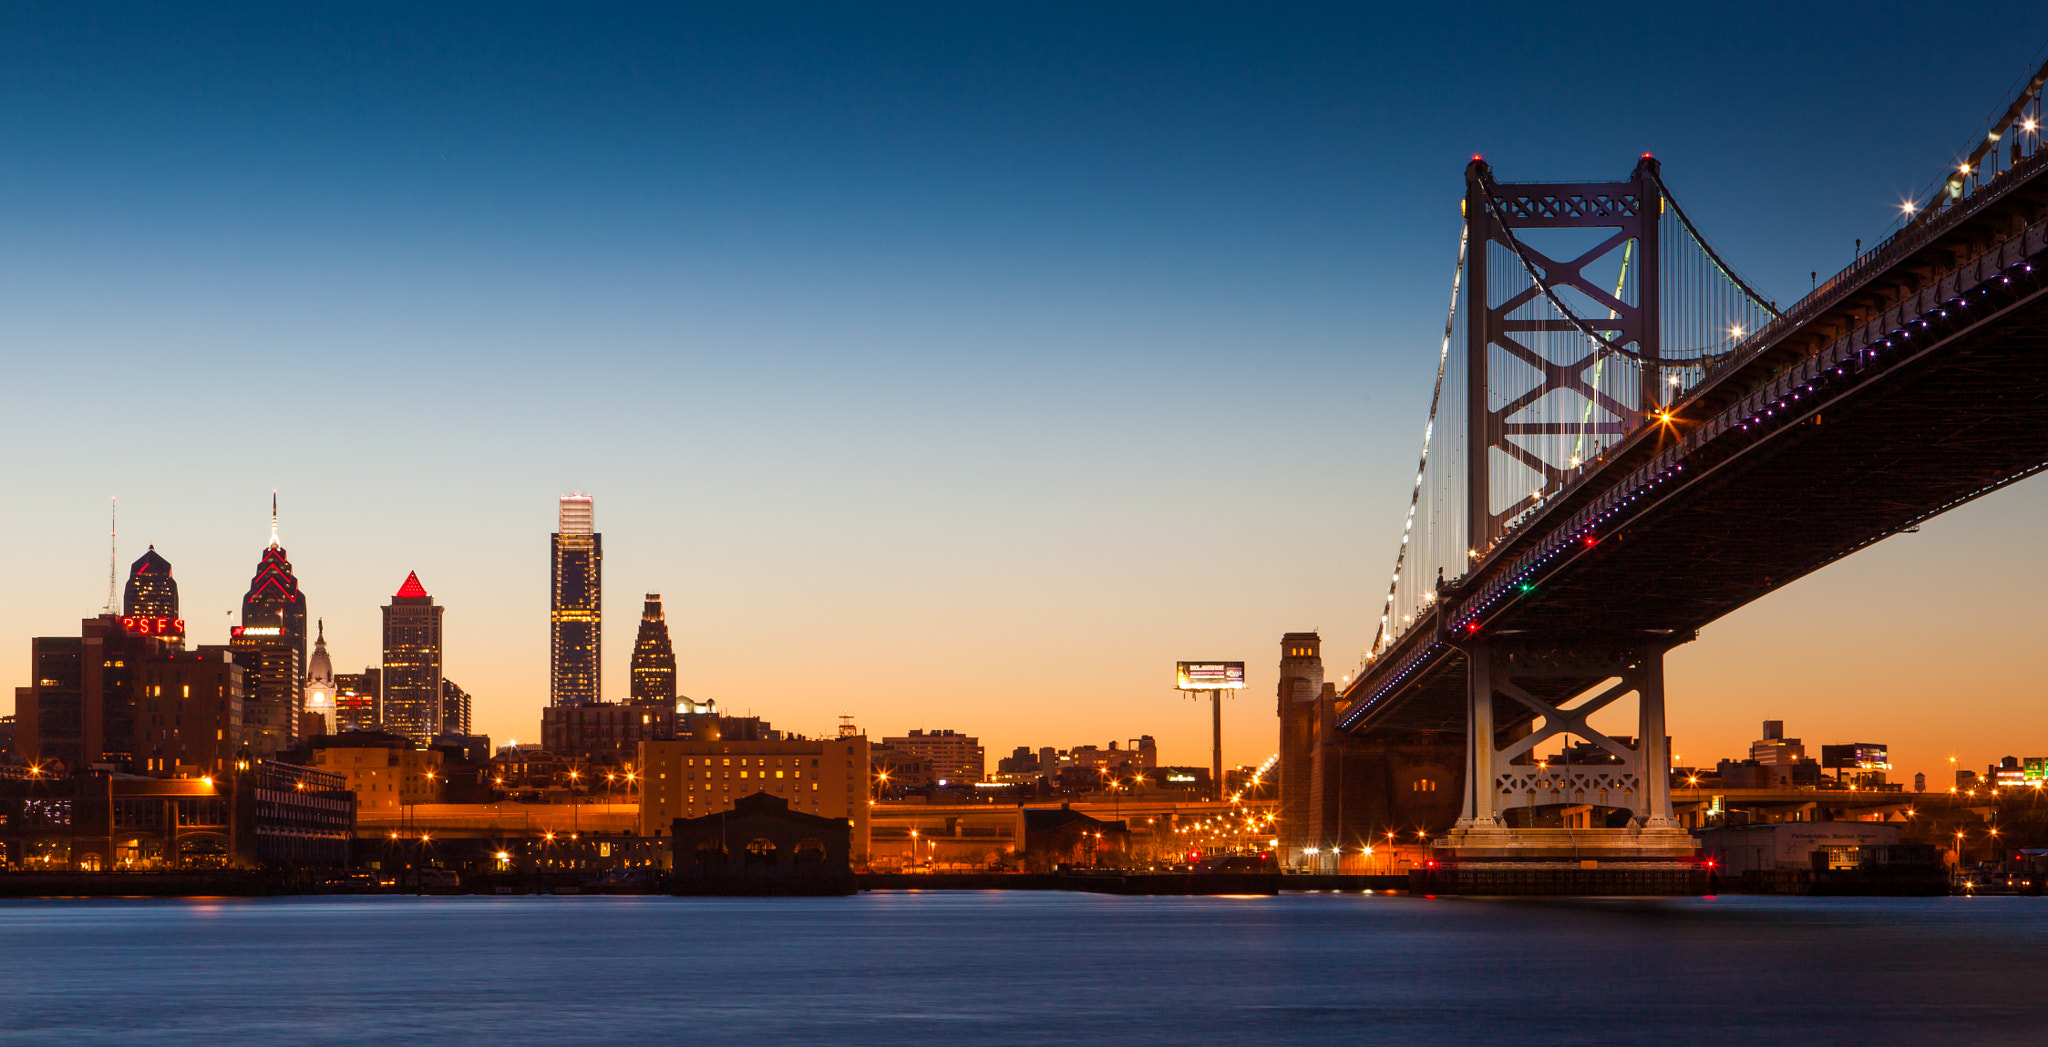 Photograph Philadelphia at dusk by Rich Williams on 500px